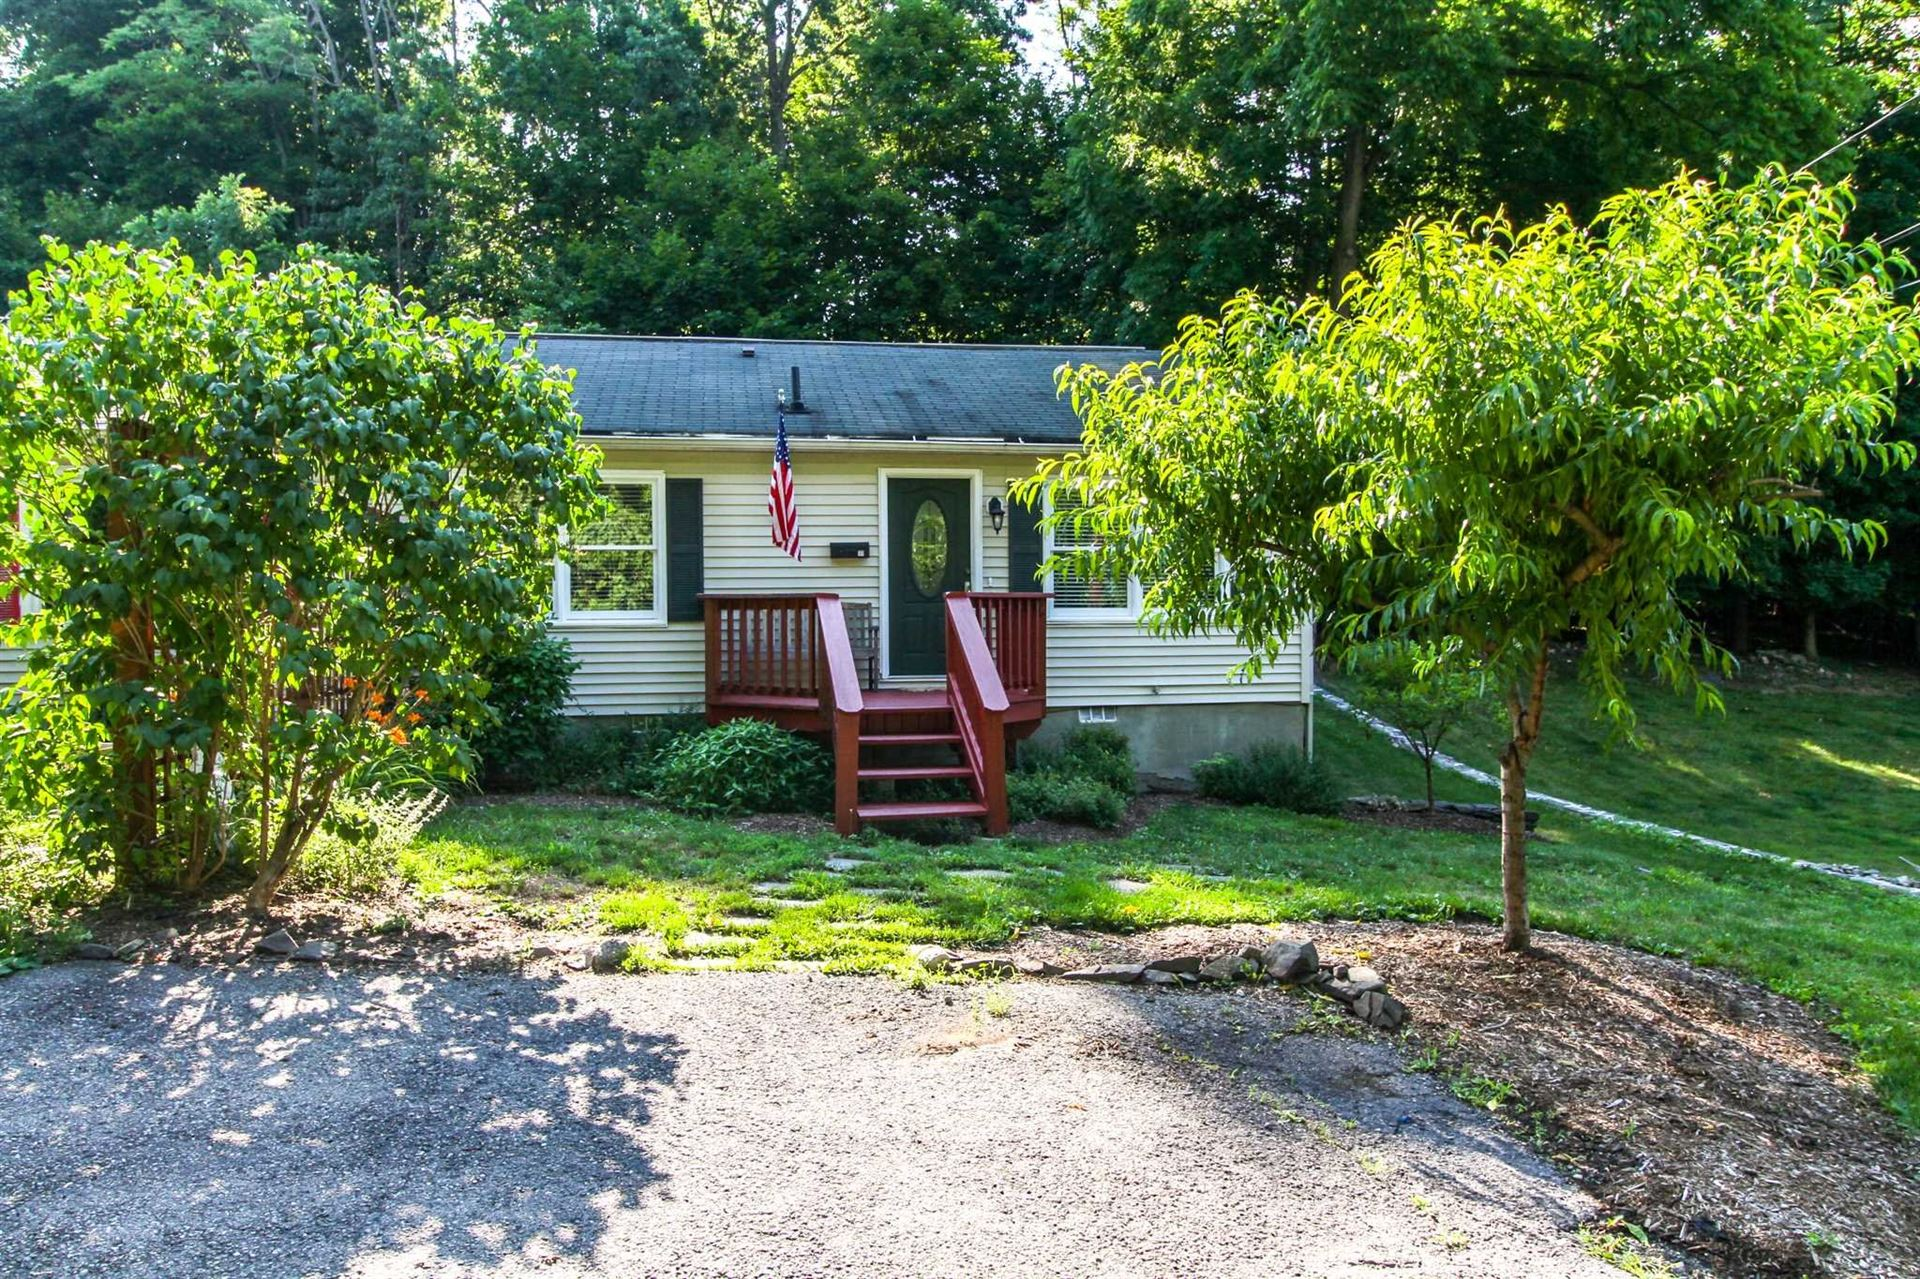 30 BANK ST, Beacon, NY 12508 - #: 392536